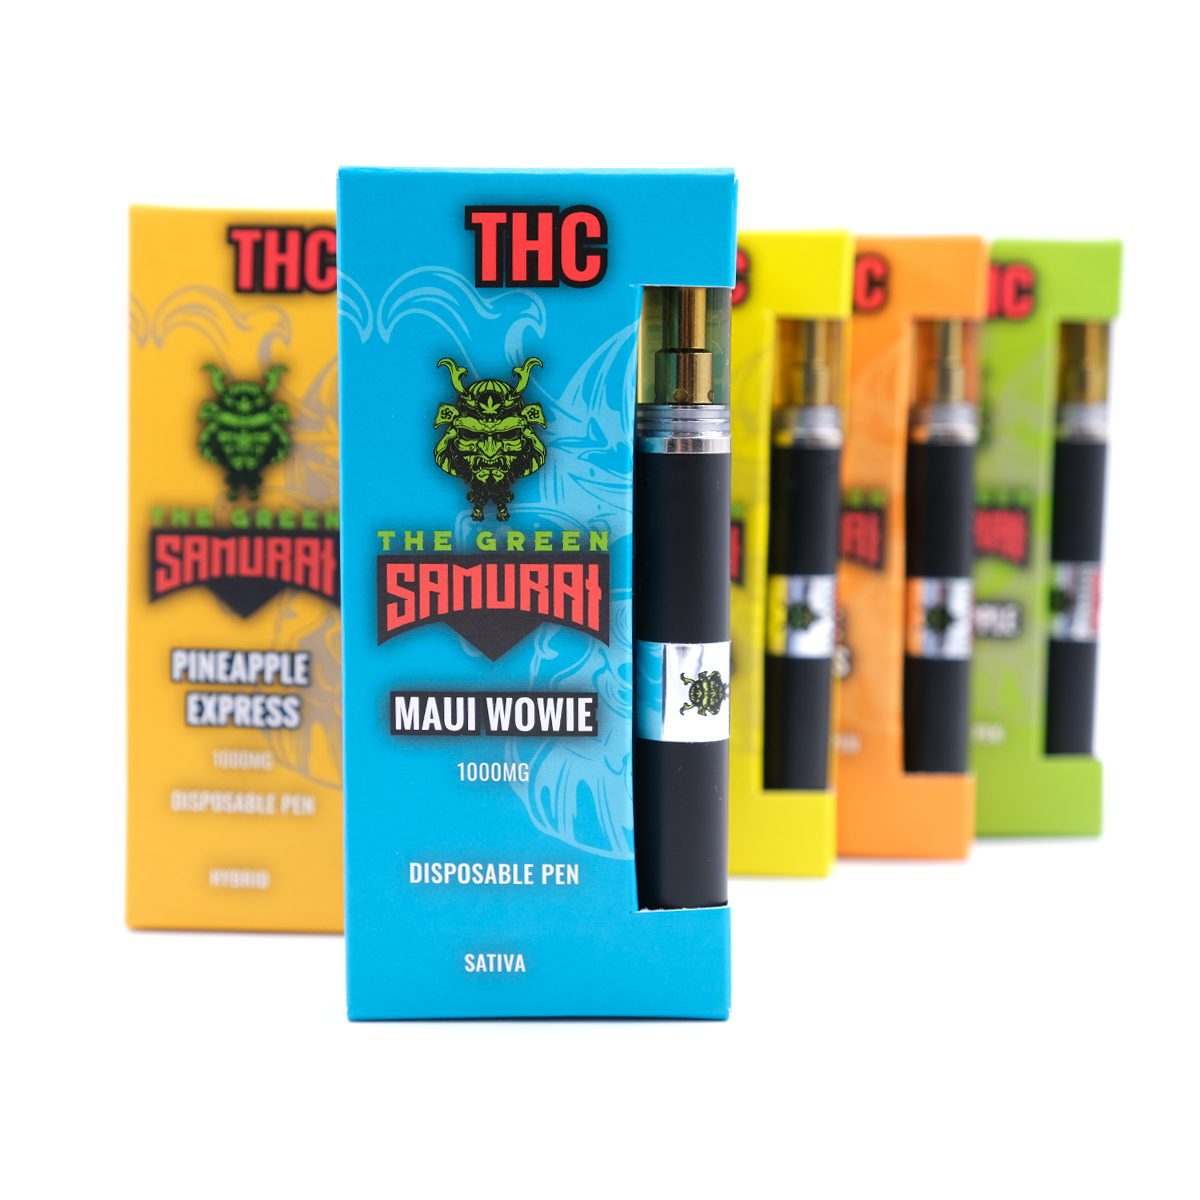 Maui Wowie 1000MG THC Disposable Pen By The Green Samurai